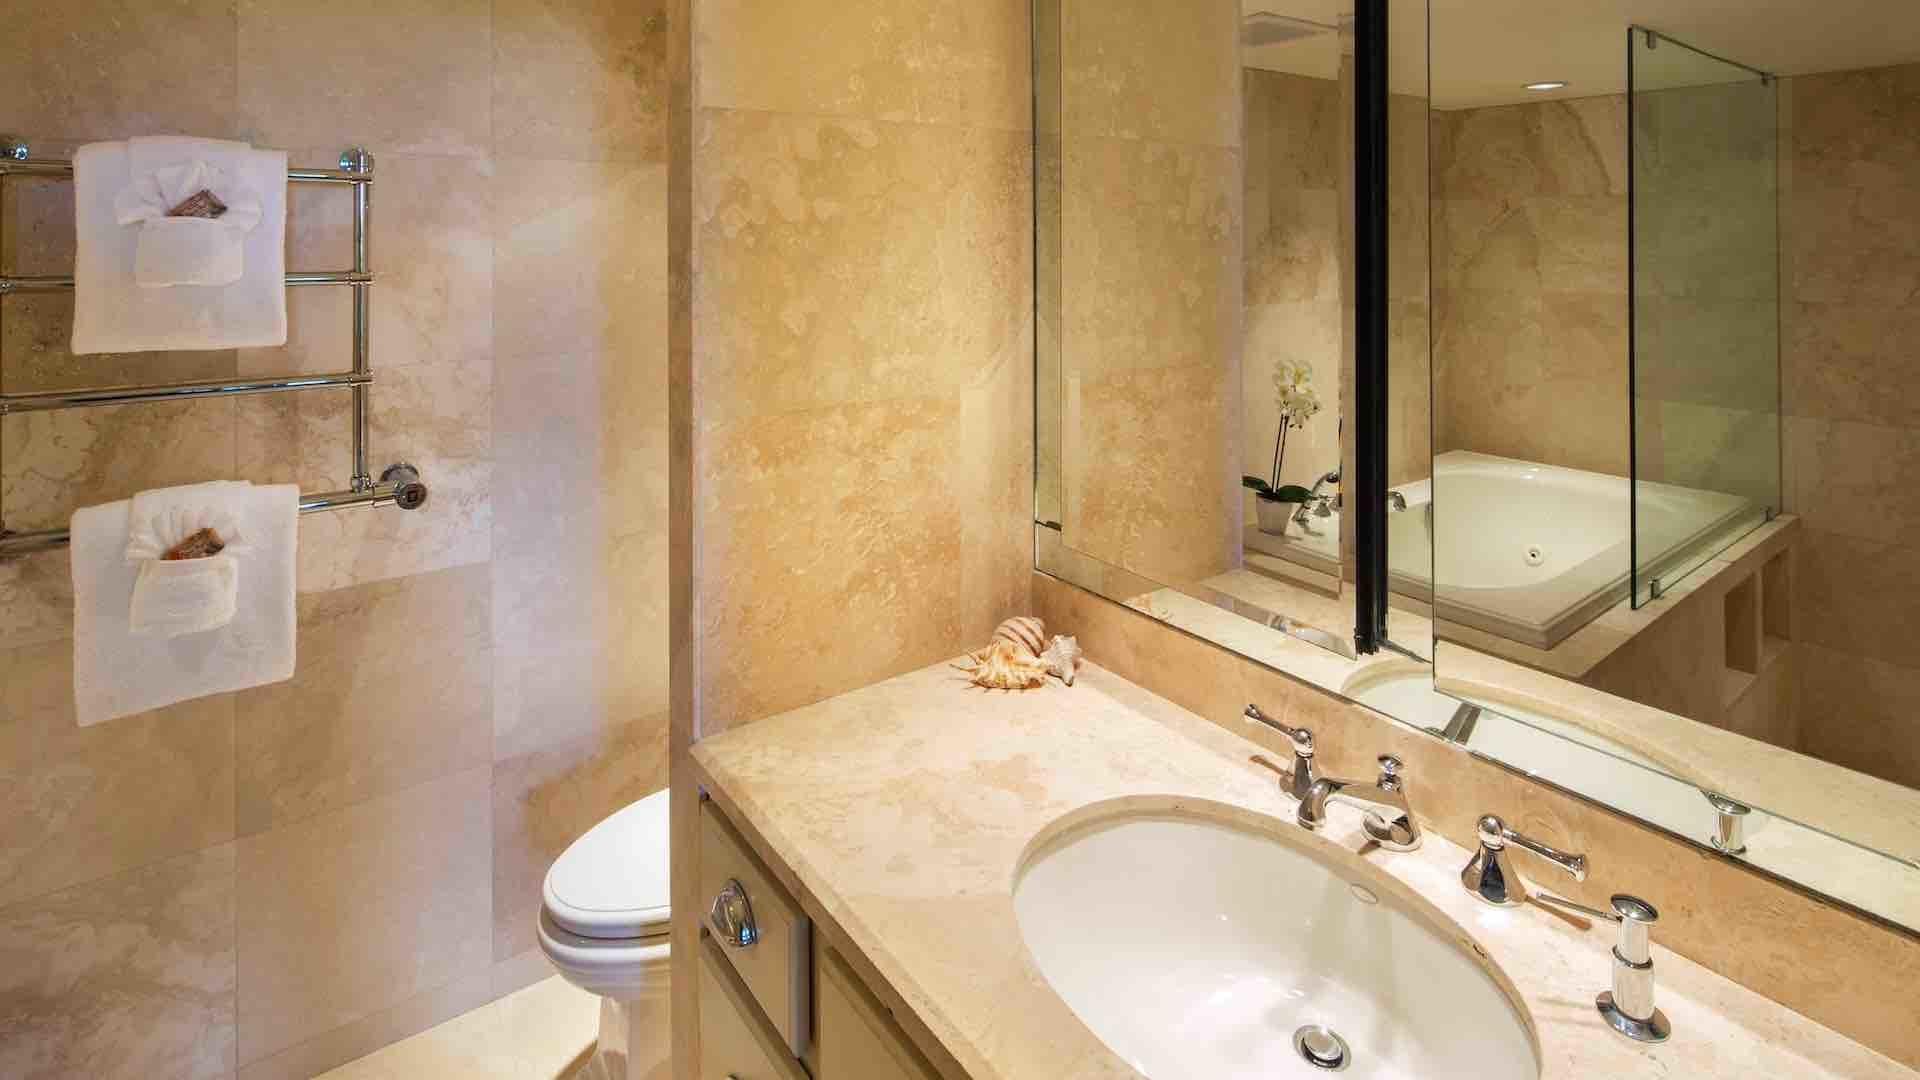 The master bathroom has been completely renovated with a modern look...